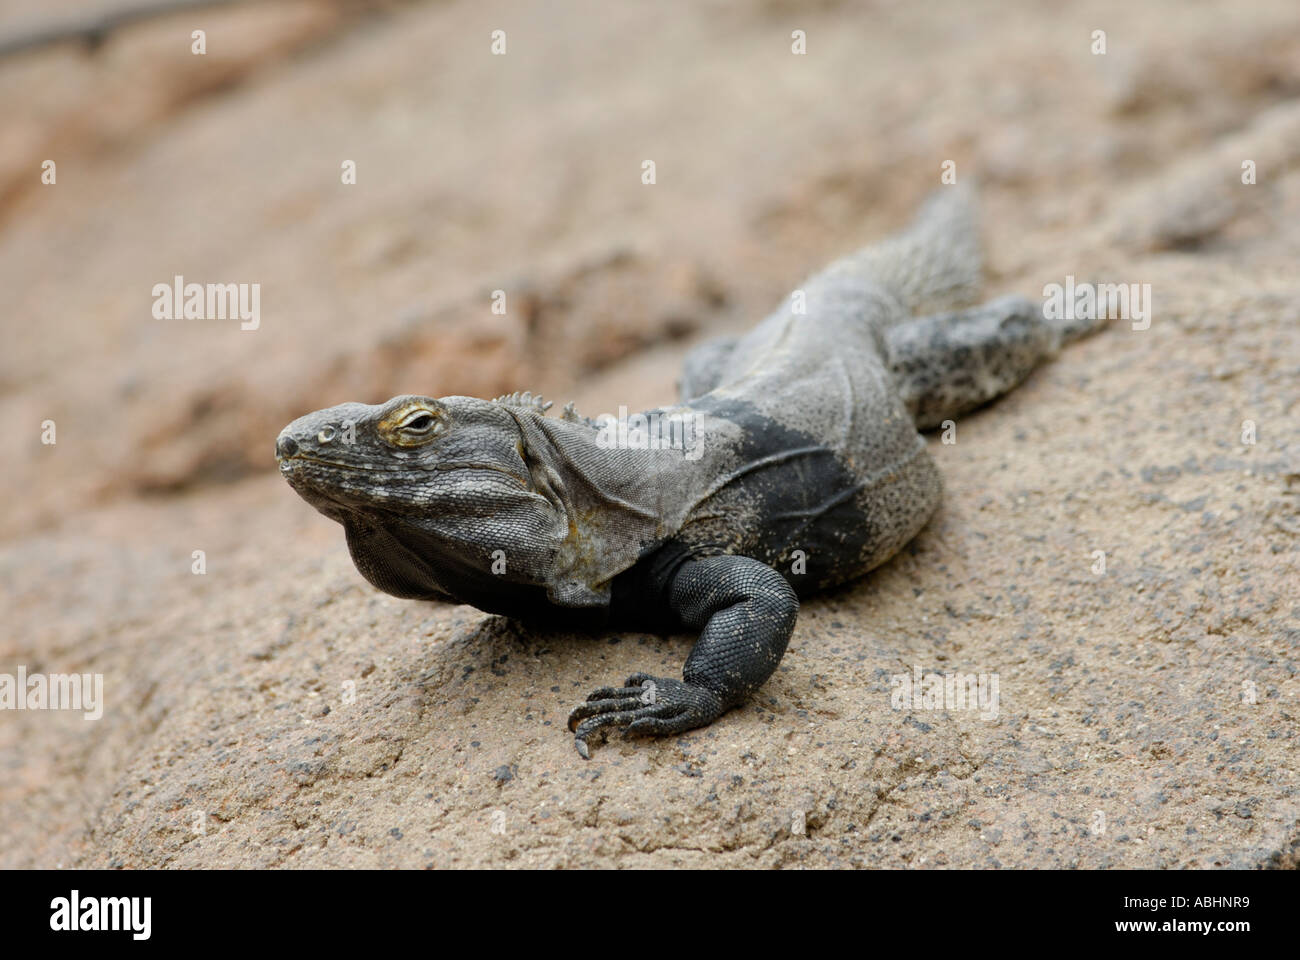 Spiny tailed iguana, Ctenosaura hemilopha, on a rock, Sonora Desert Stock Photo